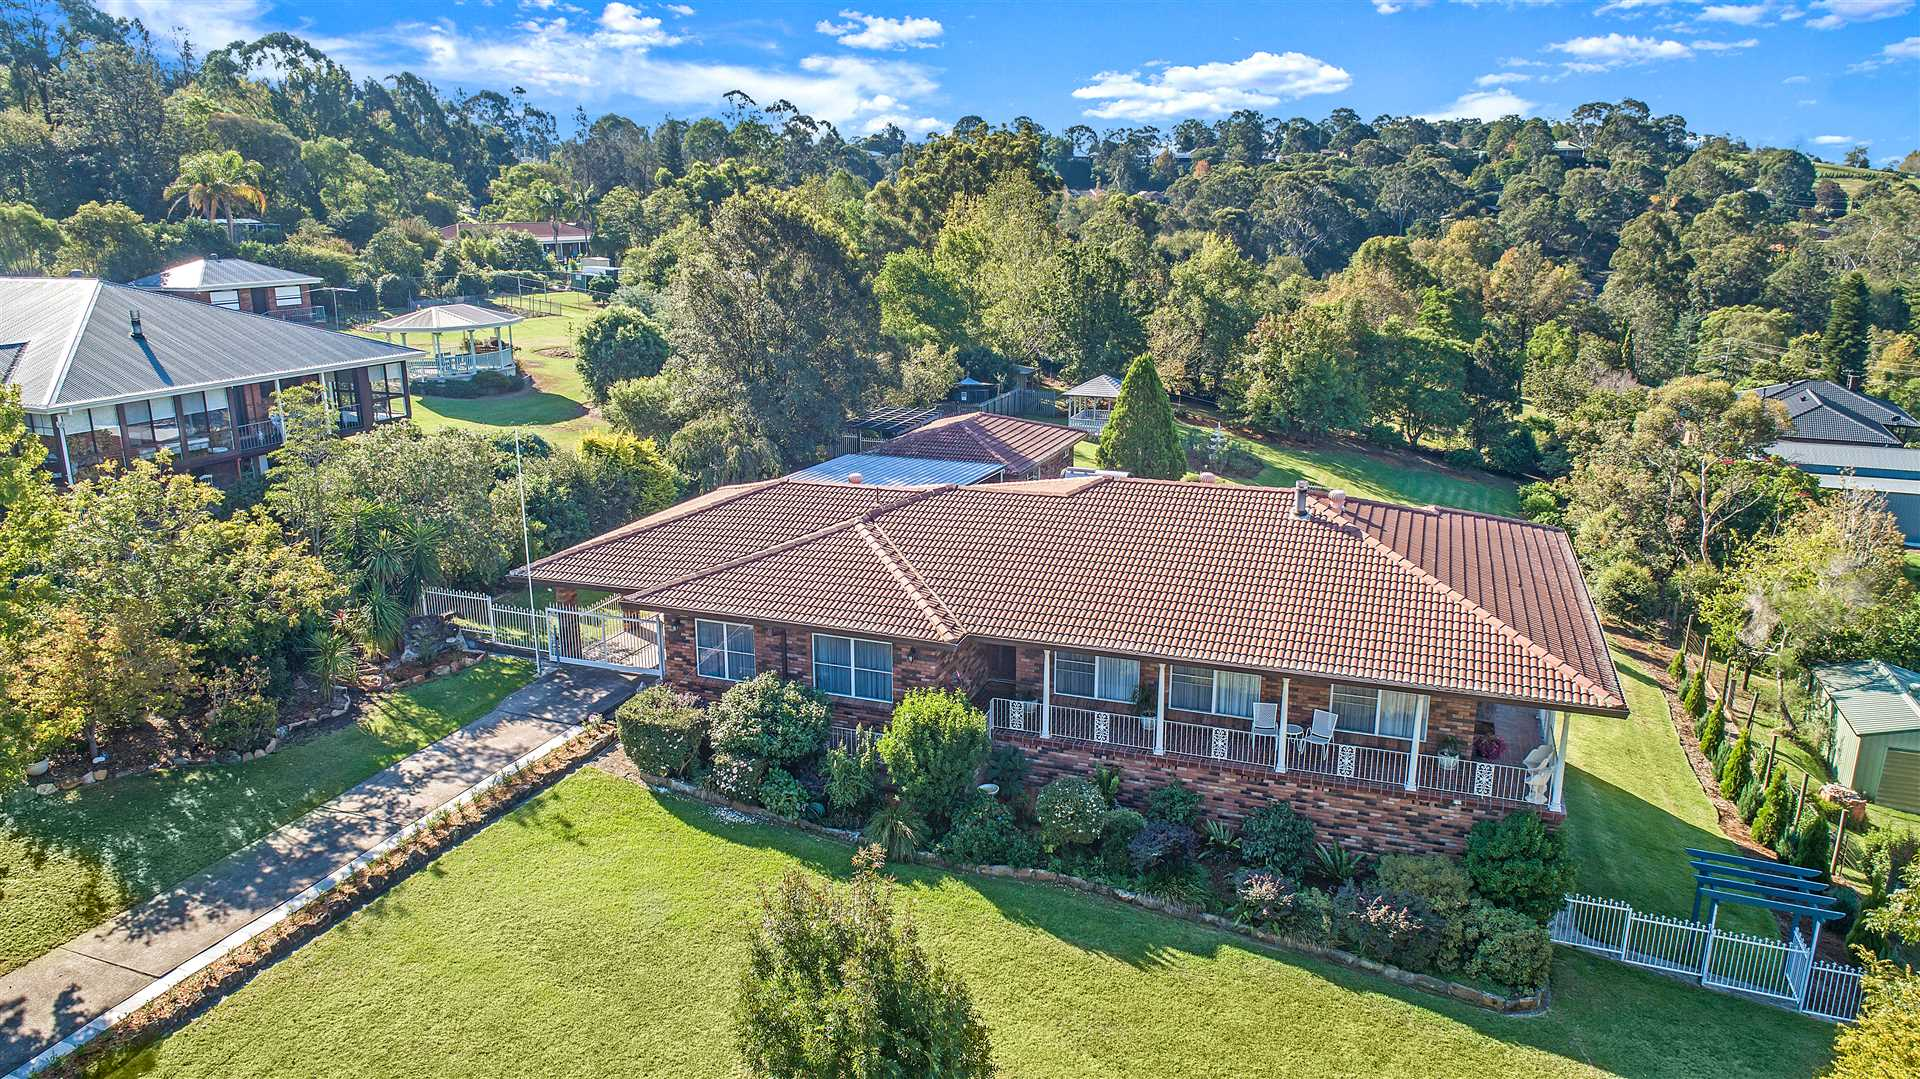 Wolvenwood - single level 1 acre home in Kurrajong Village